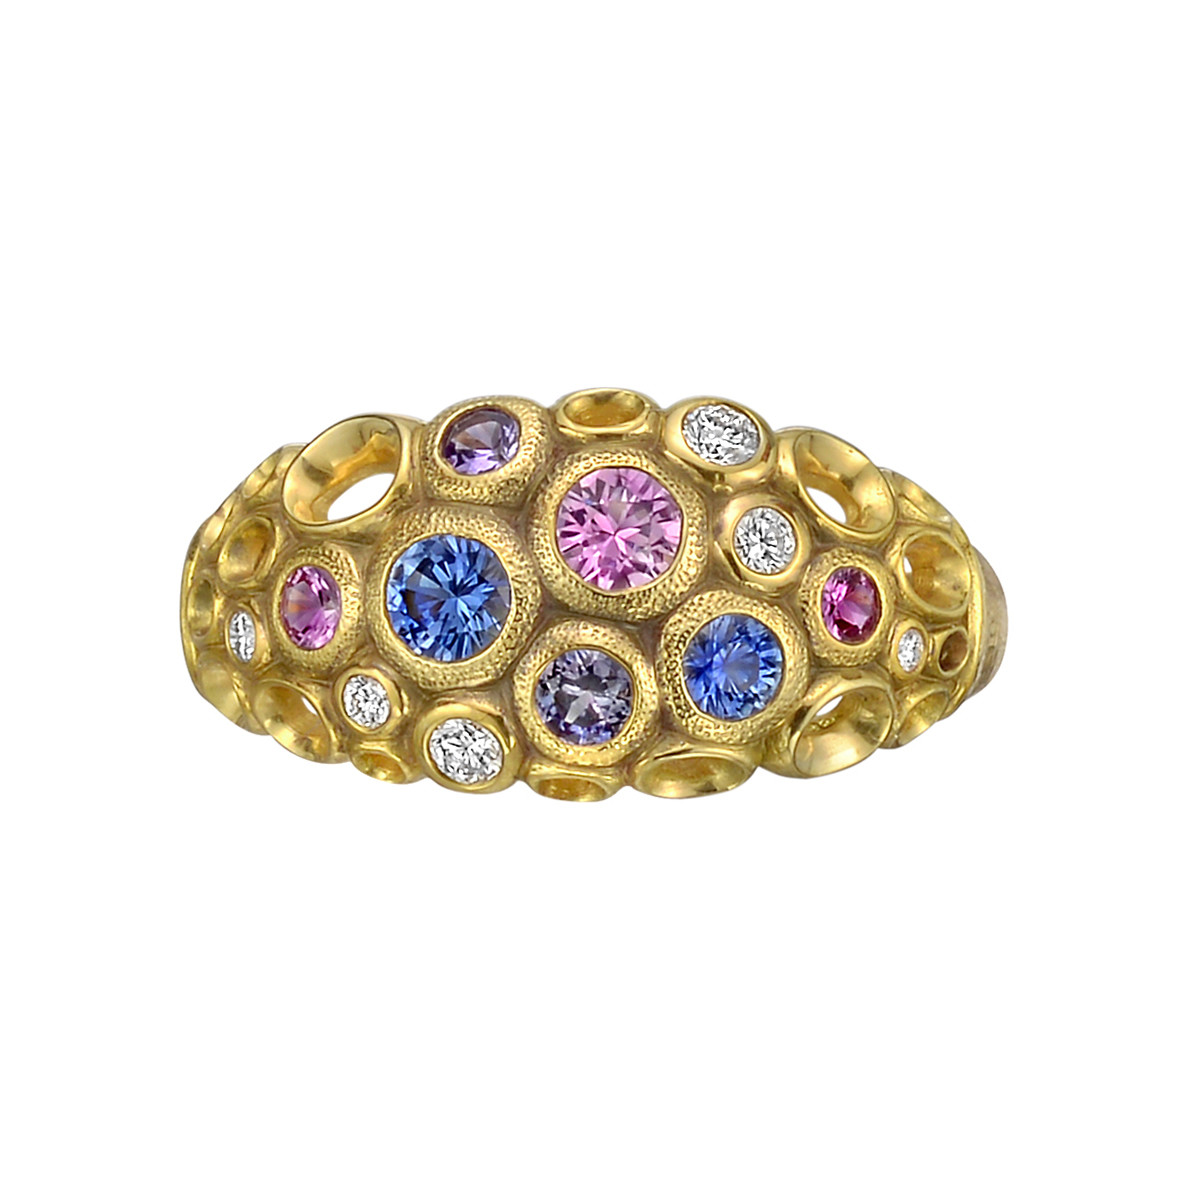 c colored multicolored multi matthew laurenza m l by campbell product ring stardust gallery jewelry mcl lyst sapphire pave